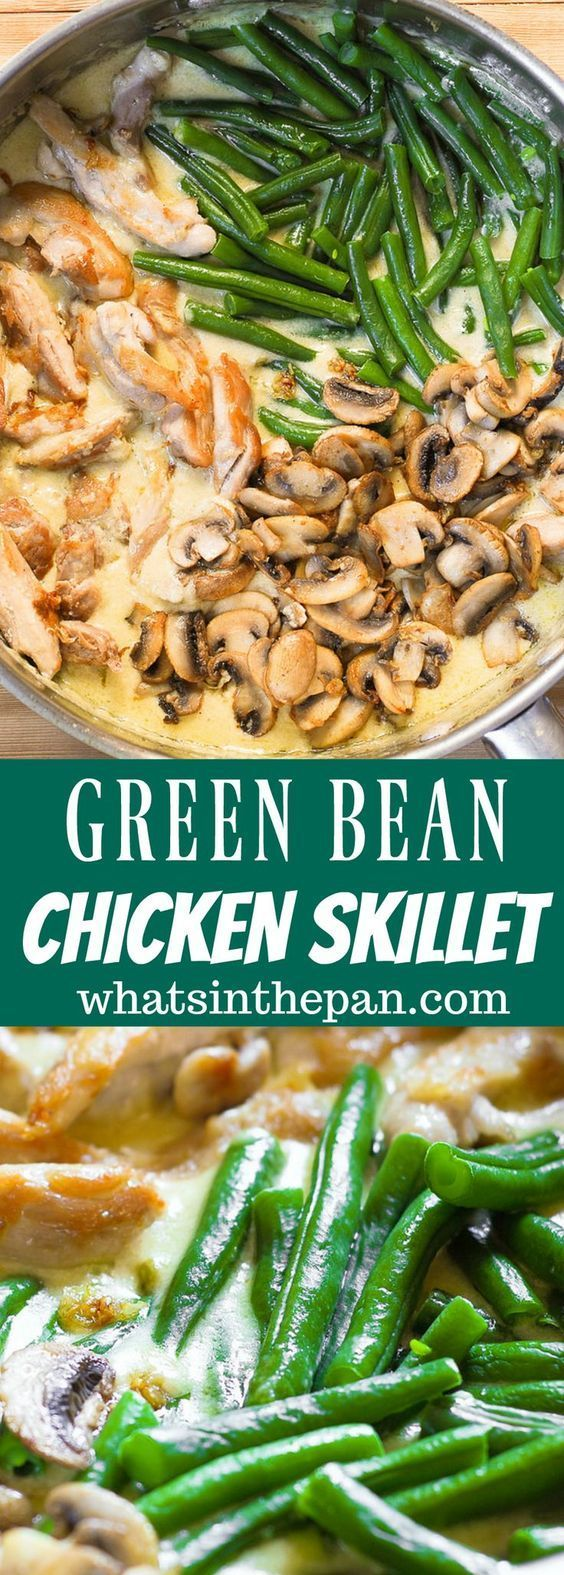 One-Skillet Chicken with Green Beans and Mushrooms